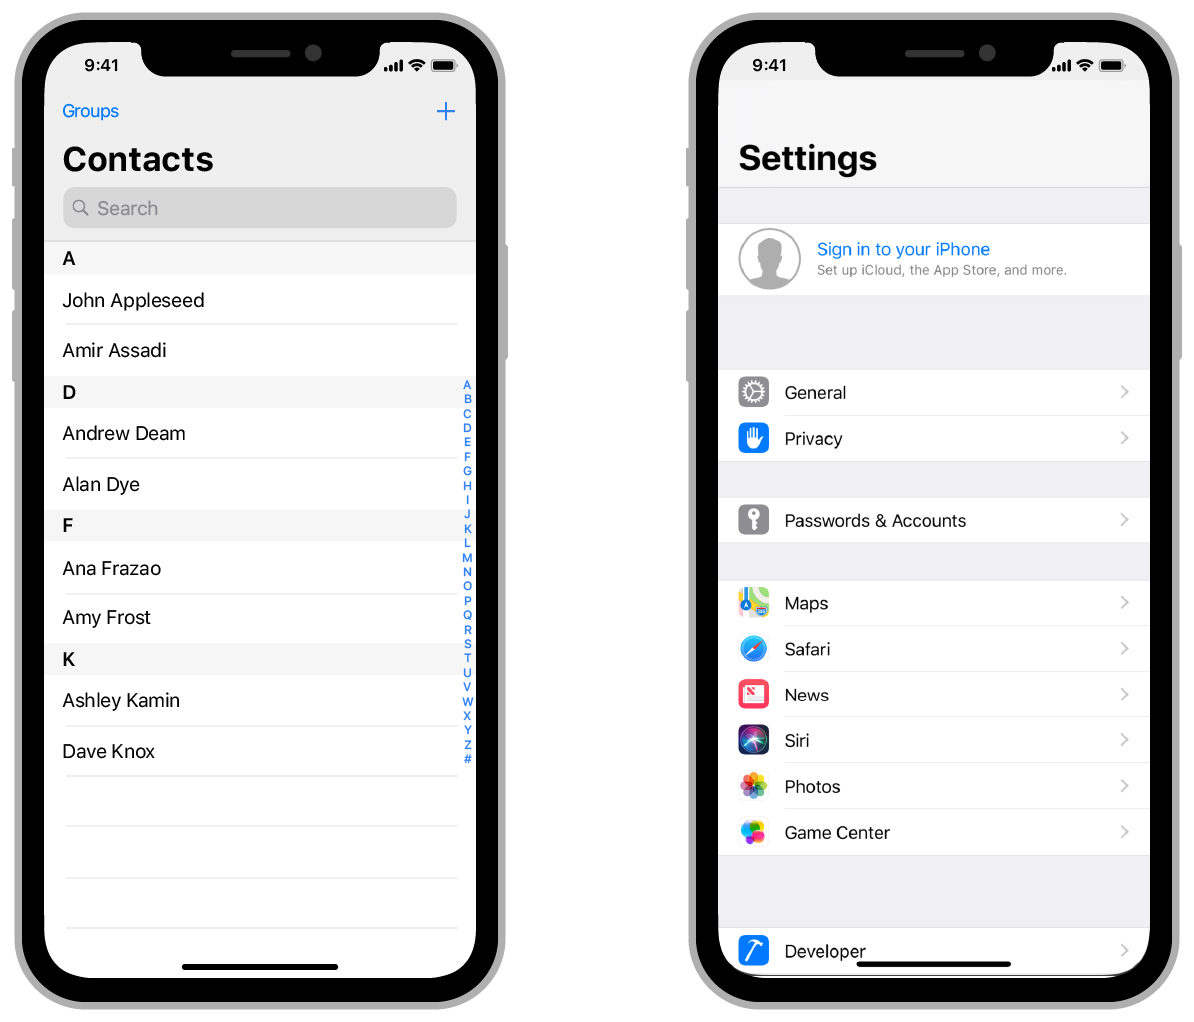 Illustration showing the Contacts app and Settings app. The Contacts app uses a table to organize the user's individual contacts in a scrolling list. The Settings app displays different groups of settings in a scrolling list.